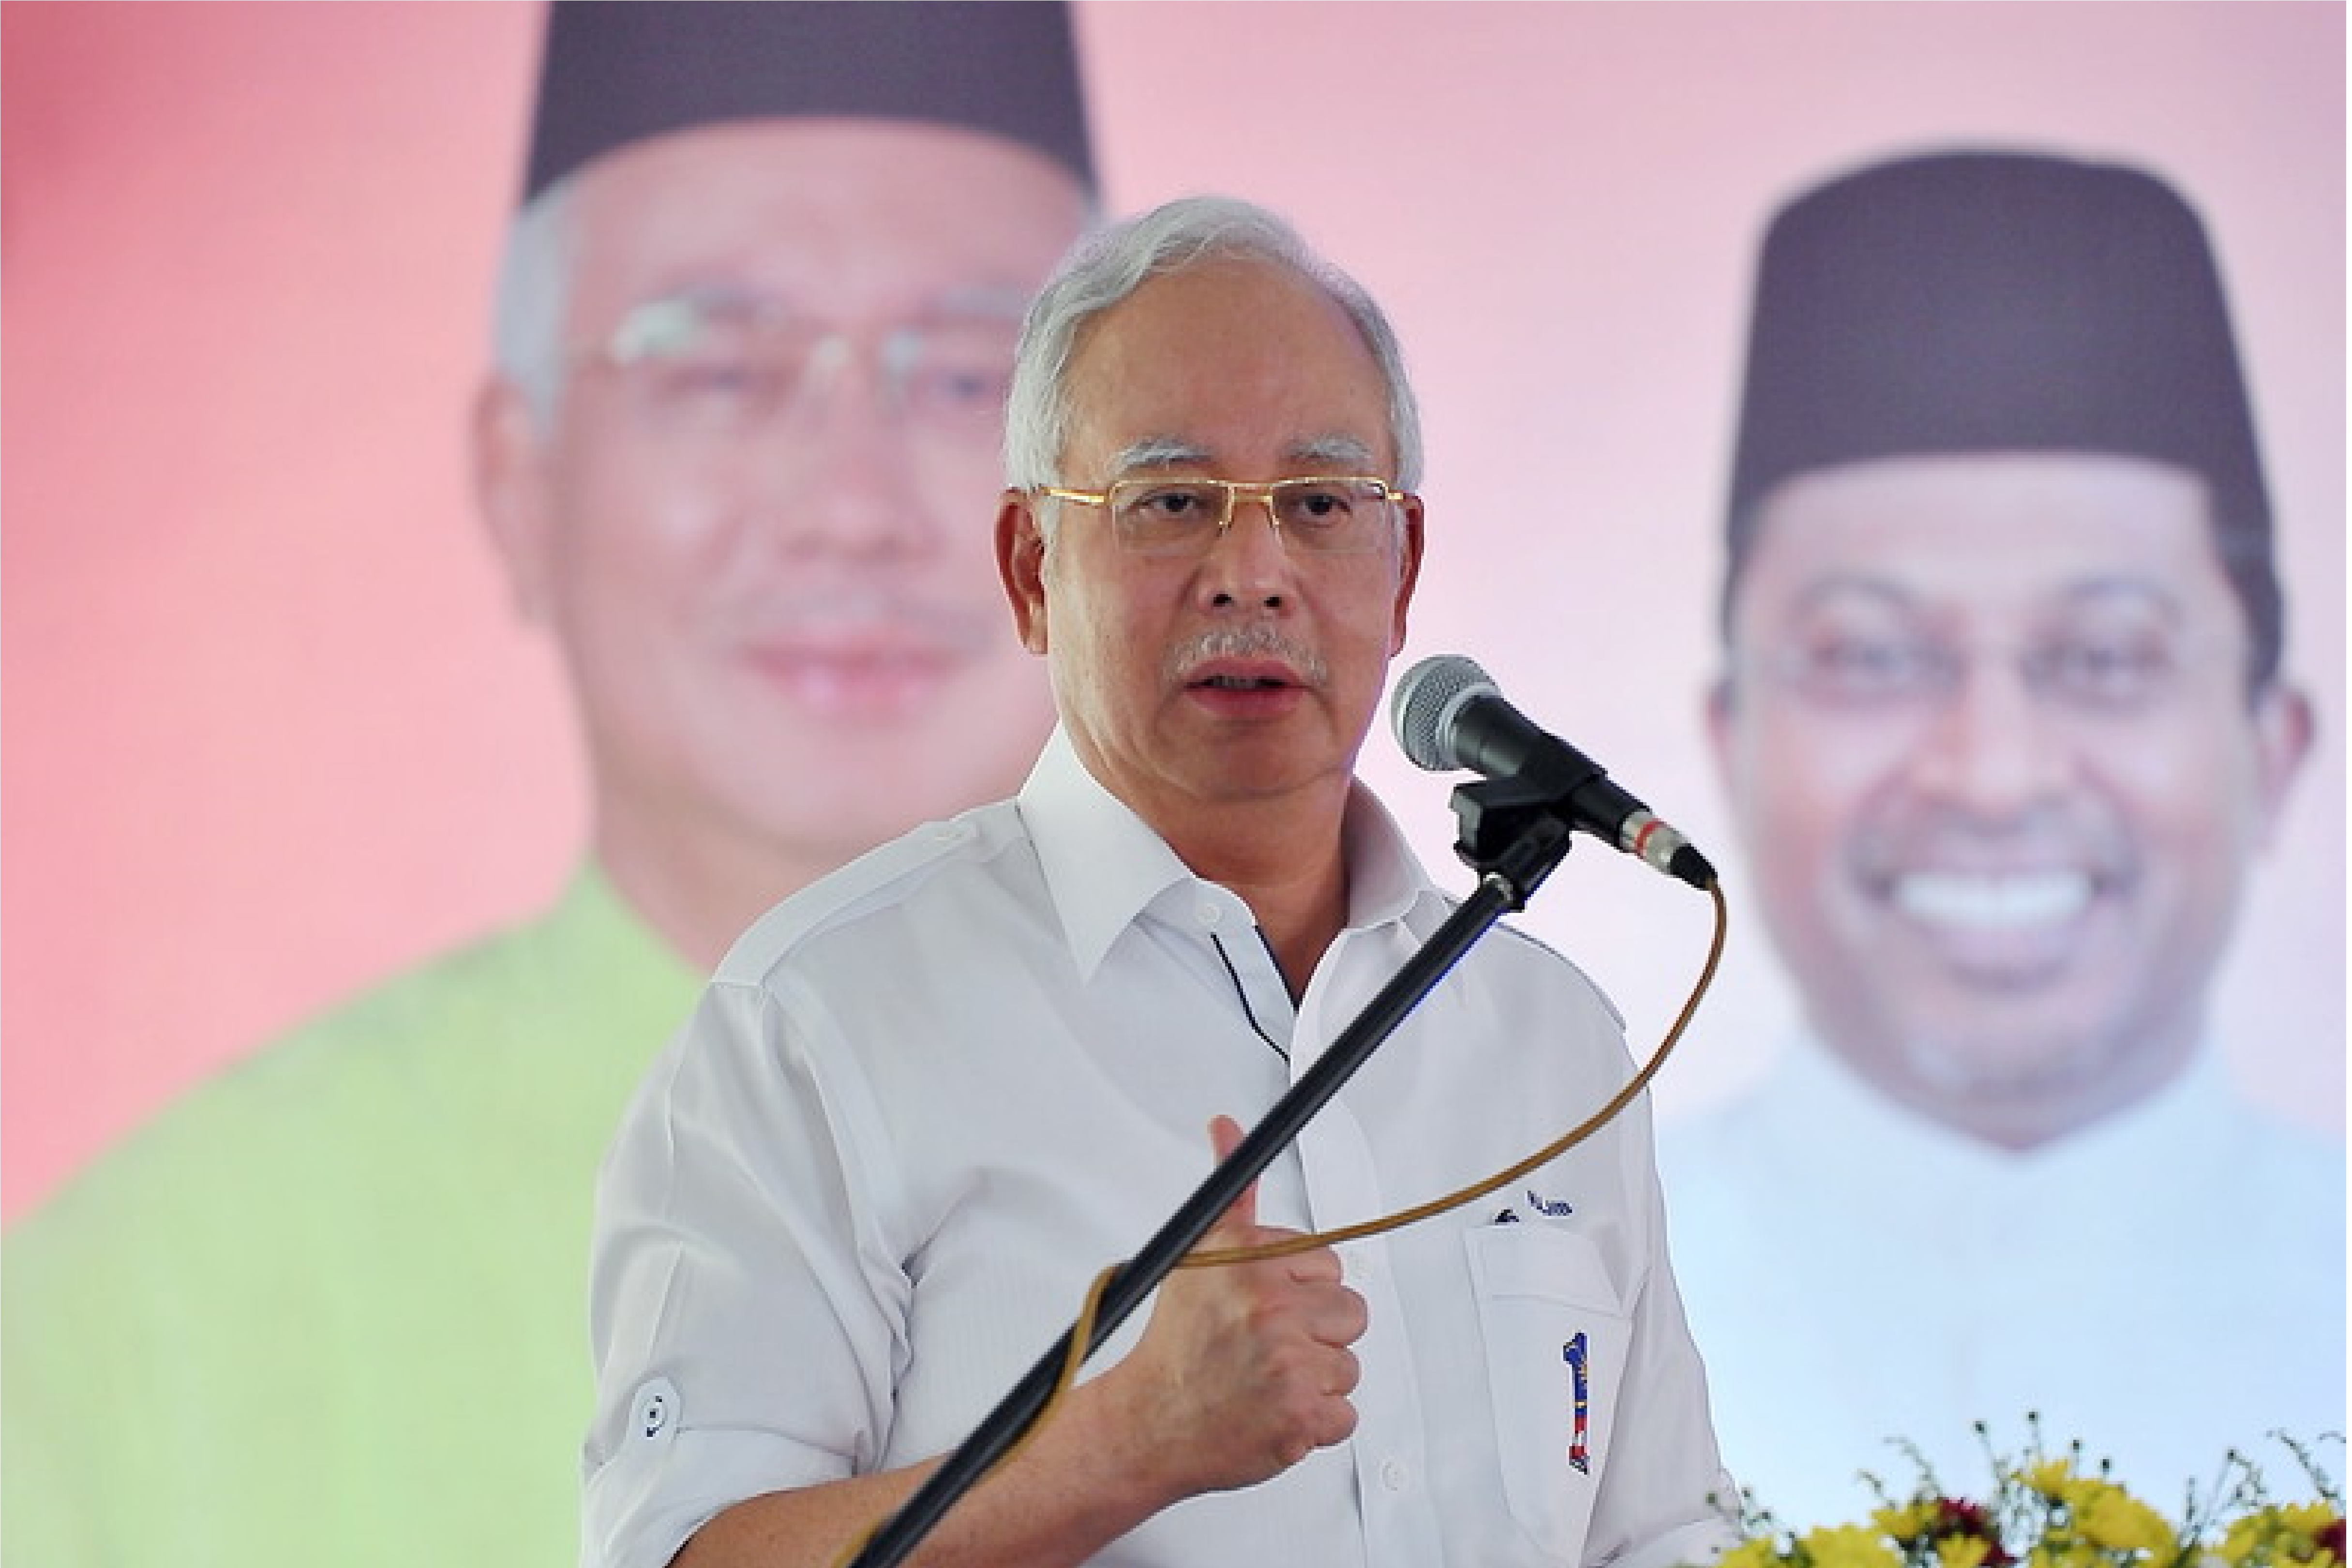 Umno and its president Datuk Seri Najib Razak have filed a suit against Malaysiakini for publishing a series of readers' posts on their website related to the recent Terengganu mentri besar saga. — Bernama pic